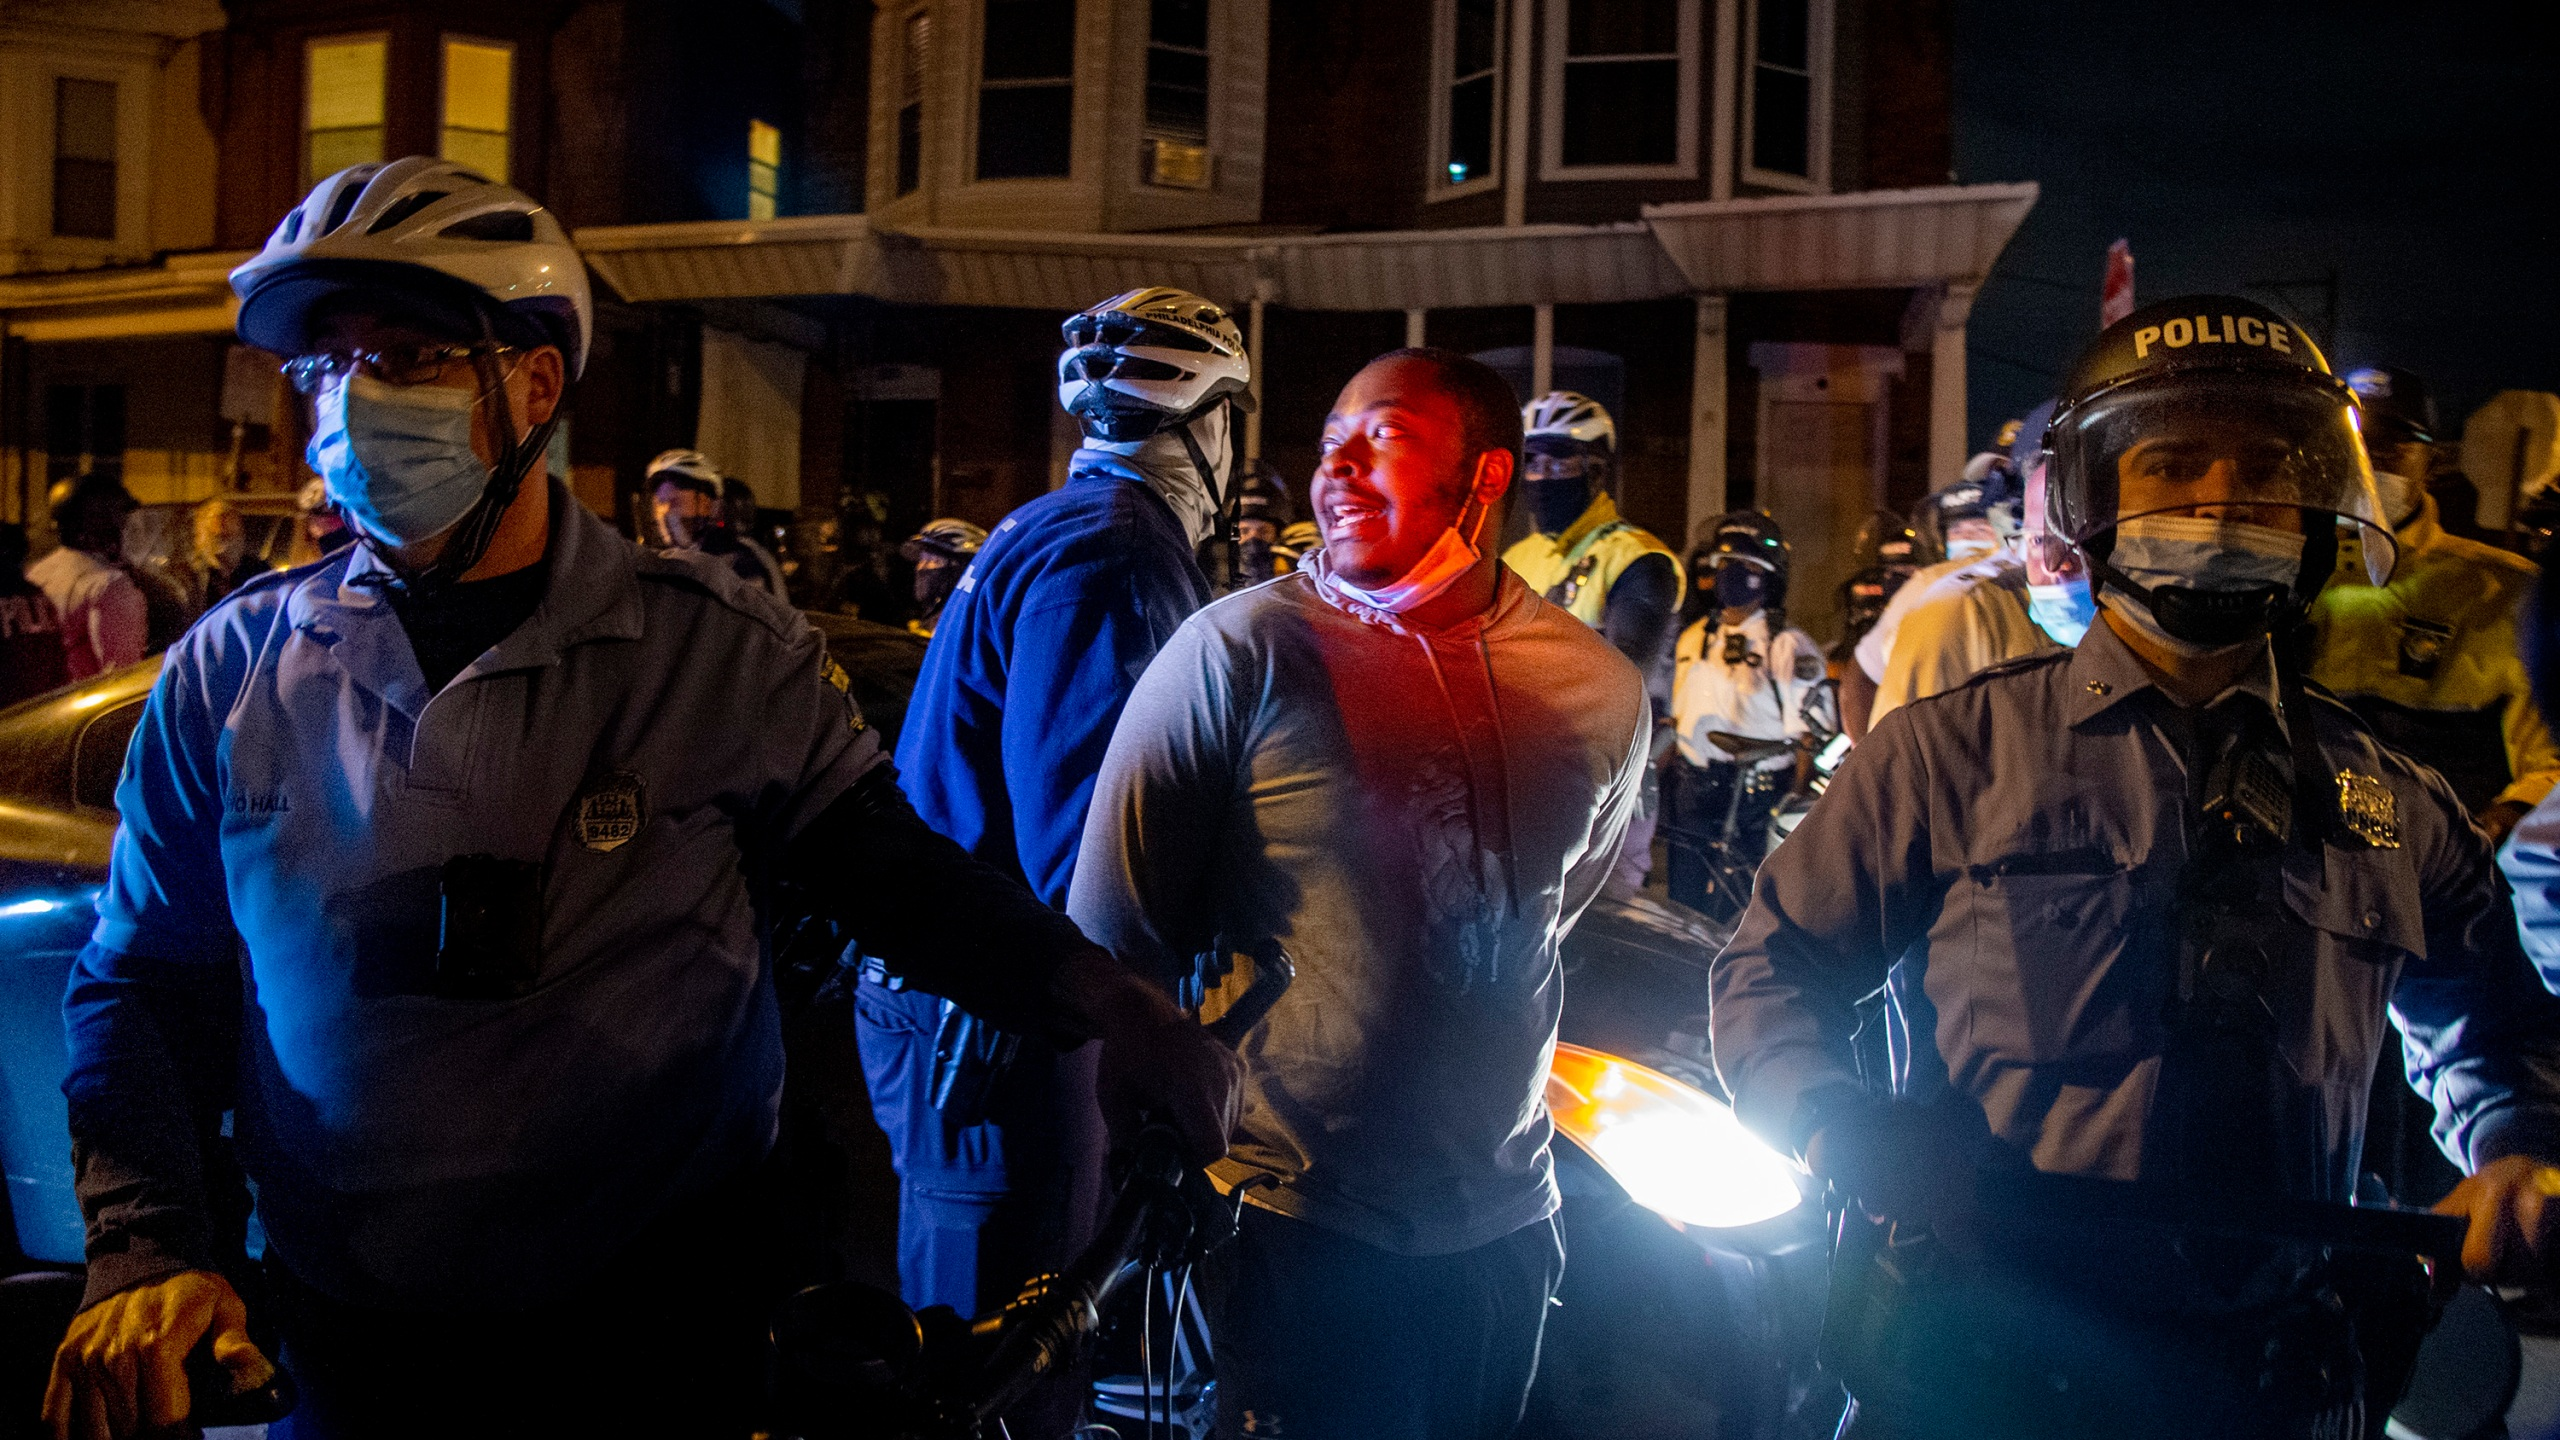 A person is handcuffed and detained by police in Philadelphia on Oct. 28, 2020, two days after Walter Wallace Jr. was killed by police officers. (Tom Gralish/The Philadelphia Inquirer via Associated Press)